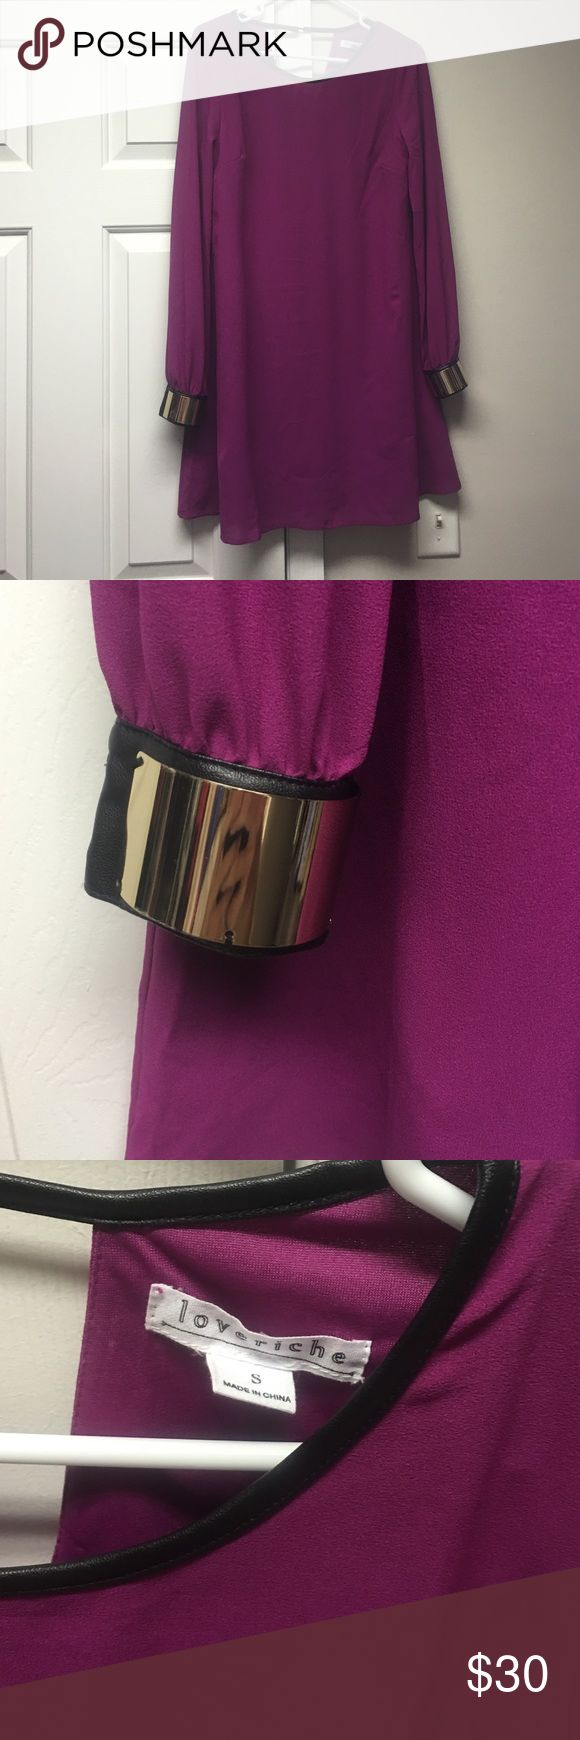 Loveriche long sleeve dress Purple long sleeve dress. Gold cuffs. Leather around the neck line. Small. Loveriche brand. Worn once. Loveriche  Dresses Long Sleeve